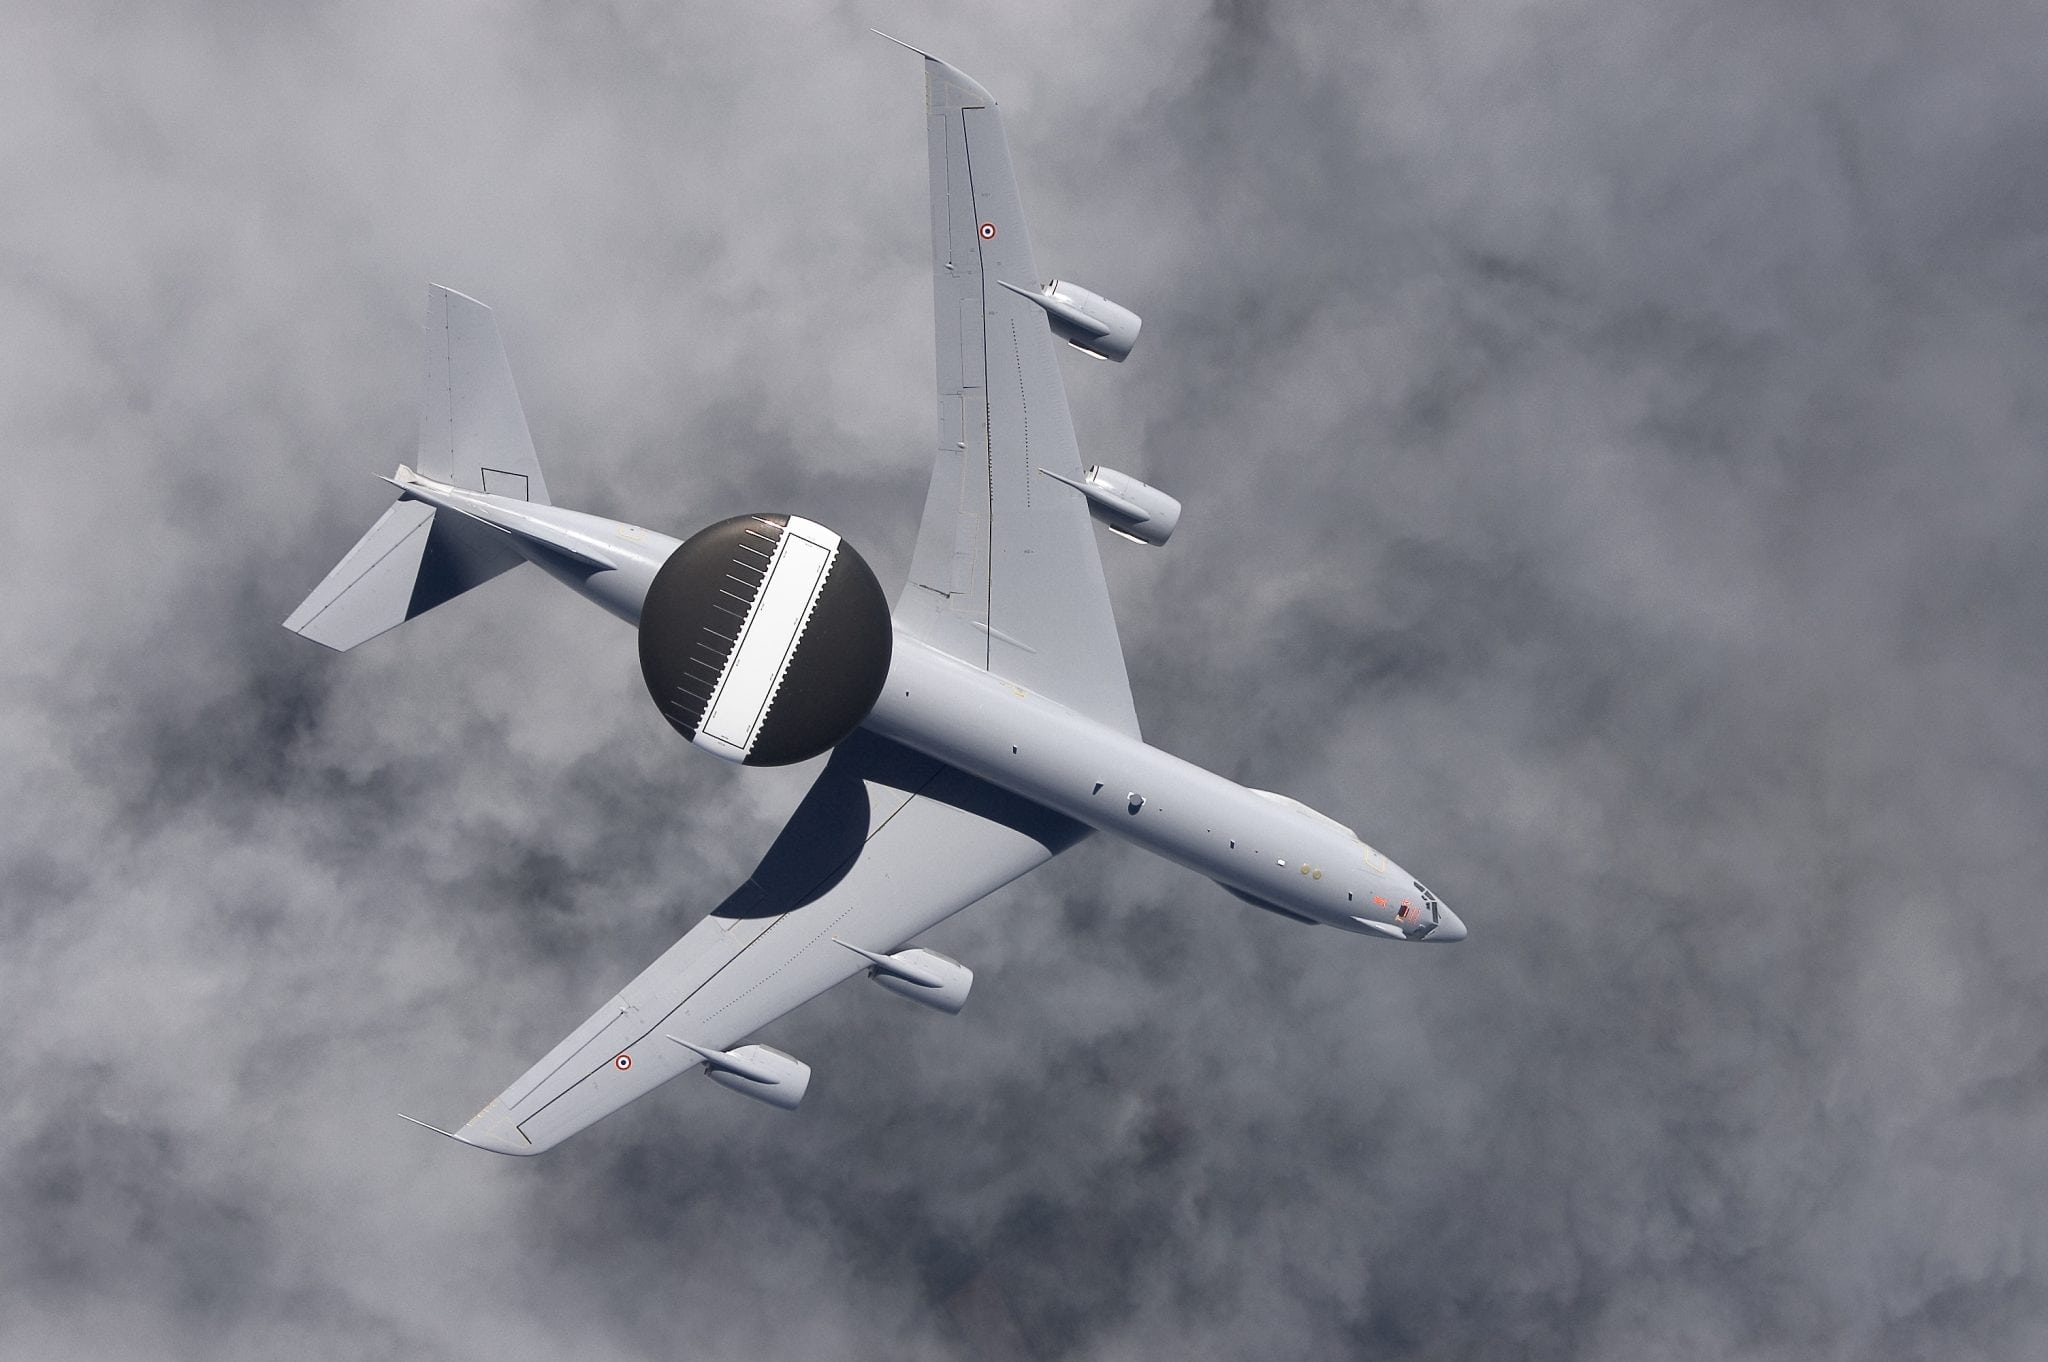 A French AWACS aircraft patrols the skies as part of a routine mission. The French AWACS fleet is in the midst of the Mid-Life Upgrade that modernizes the capabilities on board